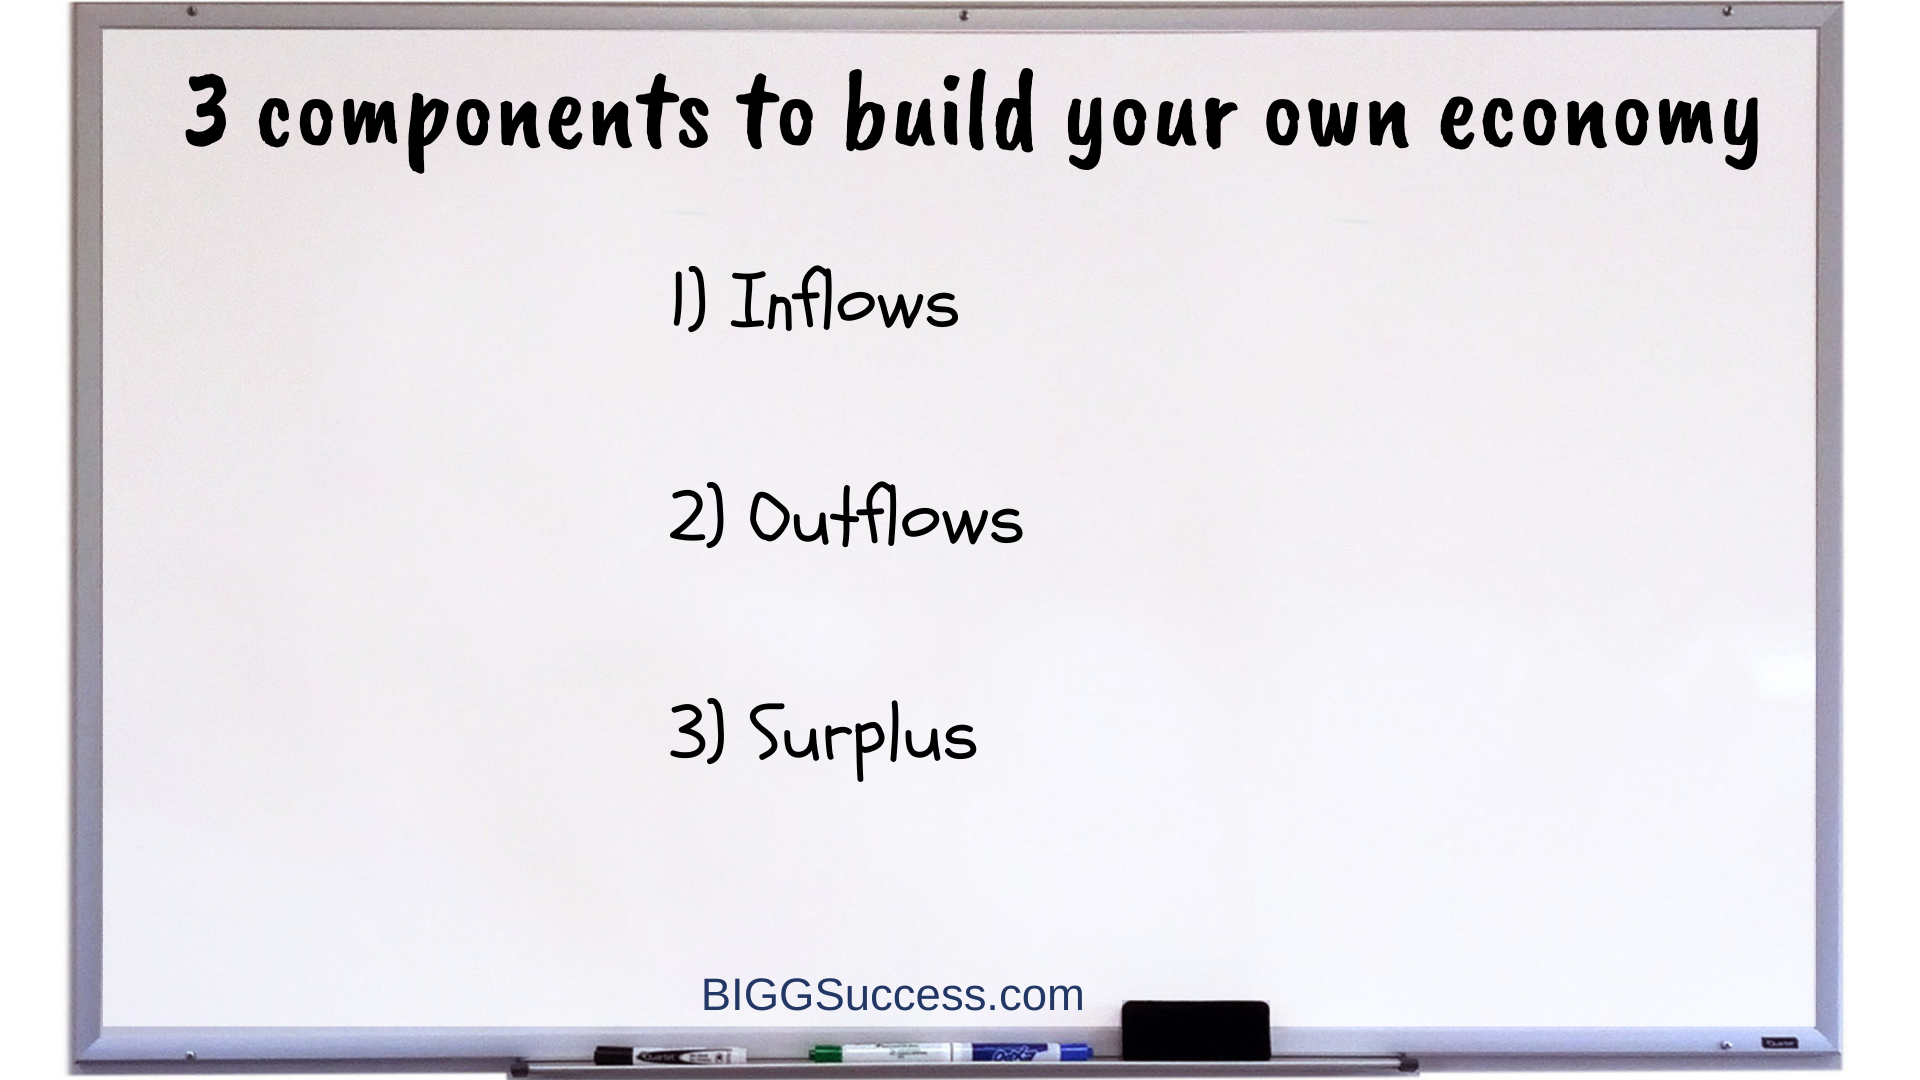 Whiteboard 1072 - 3 components to build your own economy